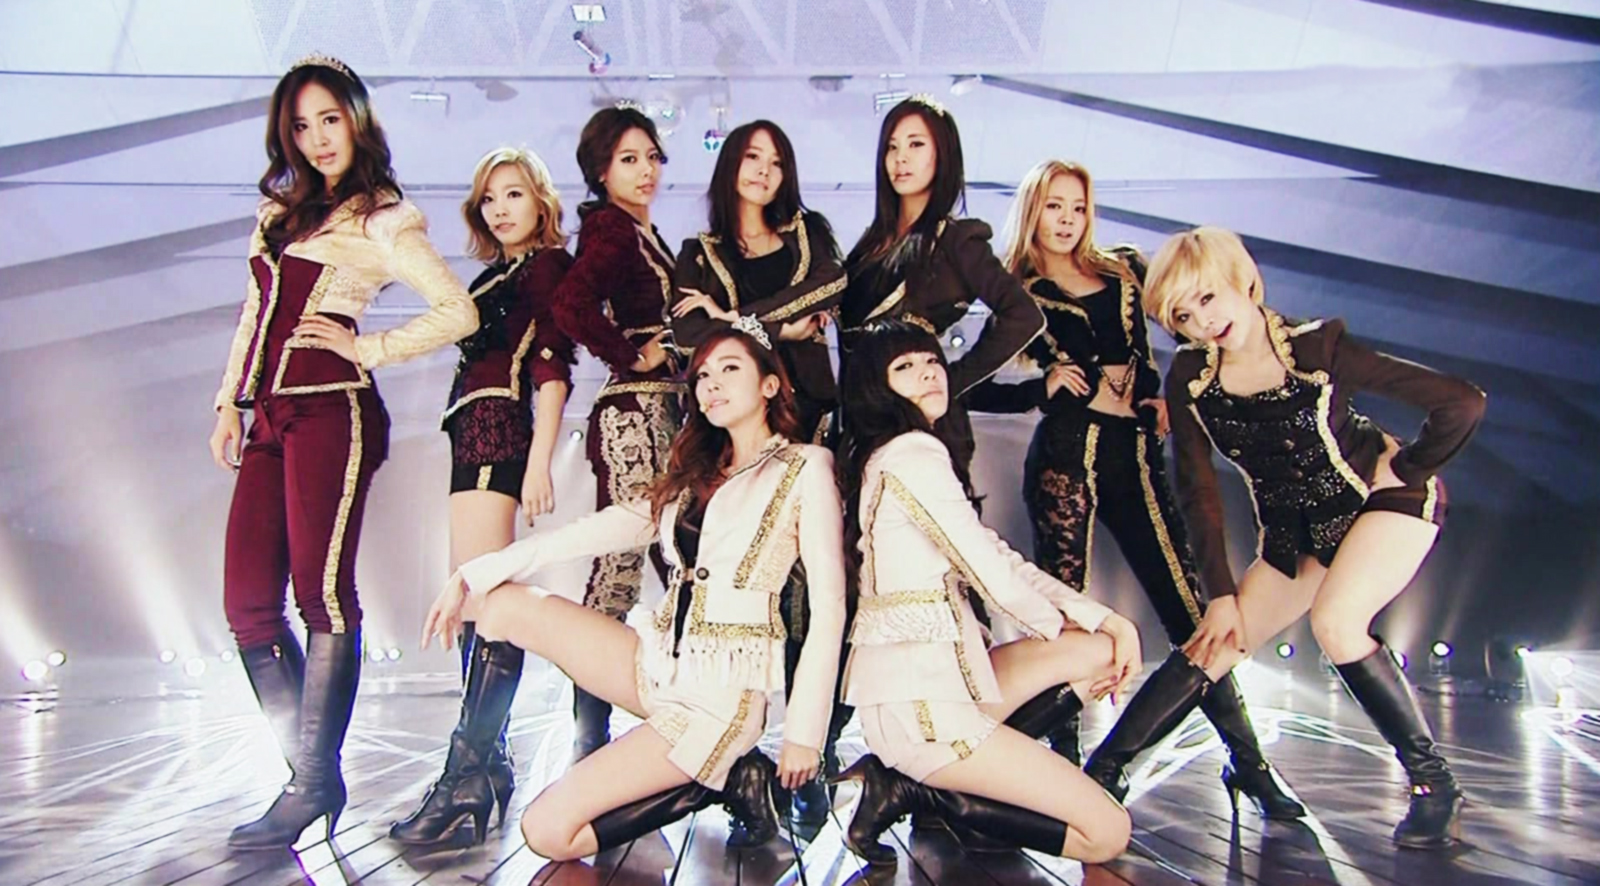 [Disc] Do you have second hand embarrassment seeing SNSD wear these? - Page 2 - Celebrity Photos ...